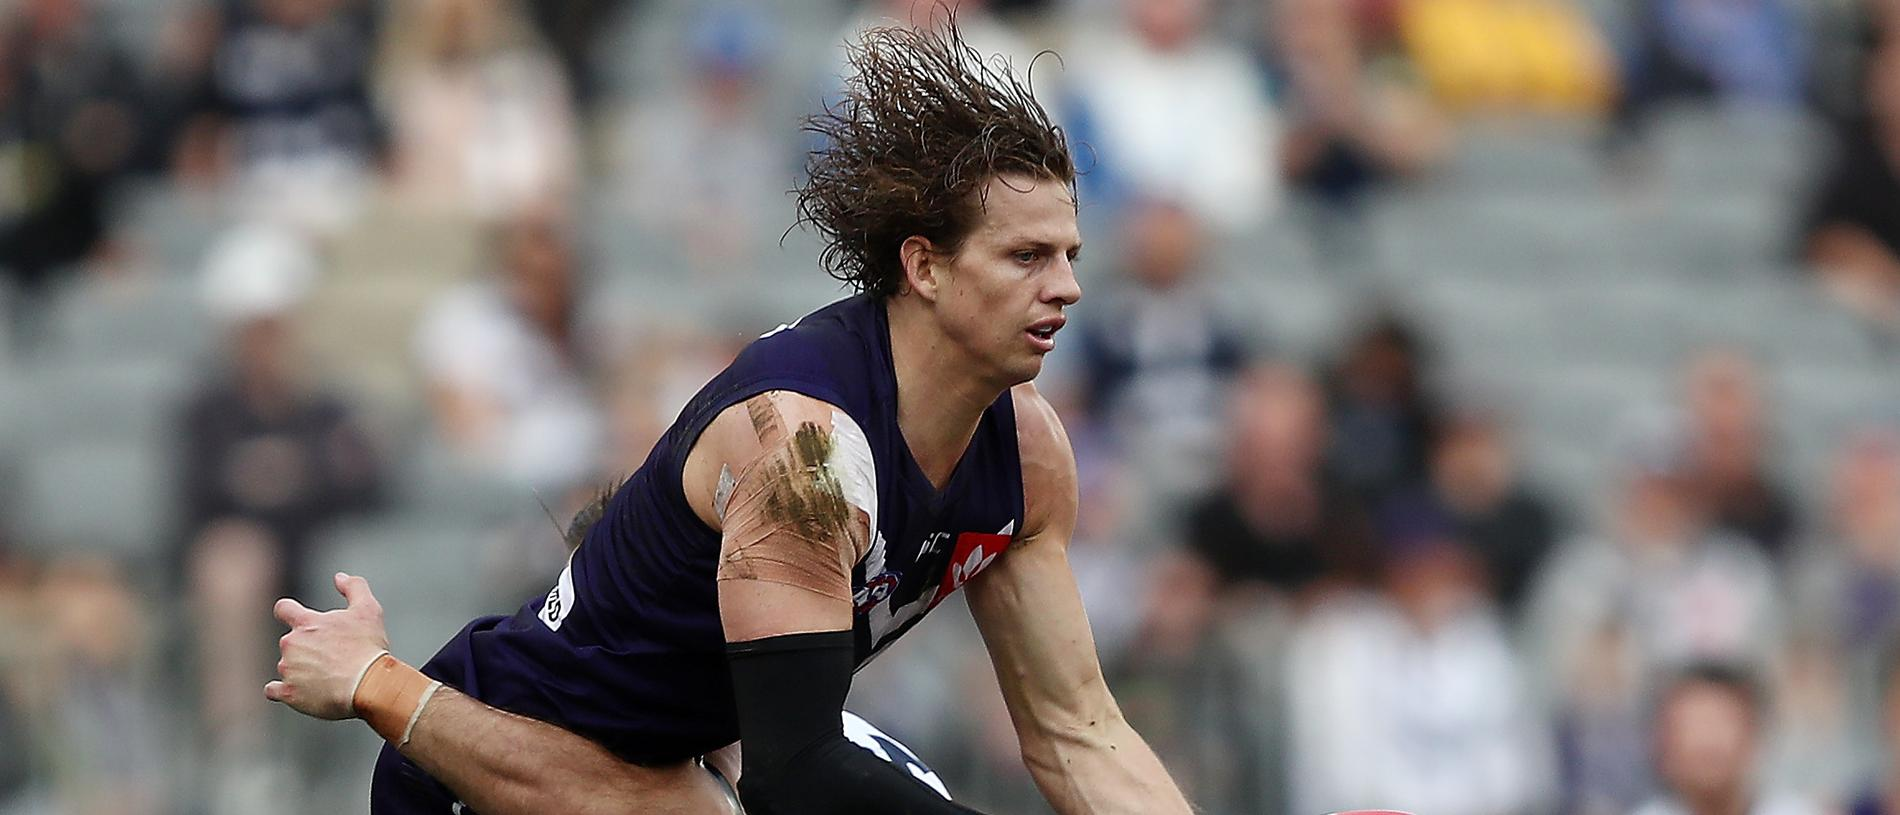 Nat Fyfe of the Dockers is tackled by Tom Hawkins of the Cats during the Round 20 AFL match between the Fremantle Dockers and the Geelong Cats at Optus Stadium in Perth, Saturday, August 3, 2019.  (AAP Image/Gary Day) NO ARCHIVING, EDITORIAL USE ONLY